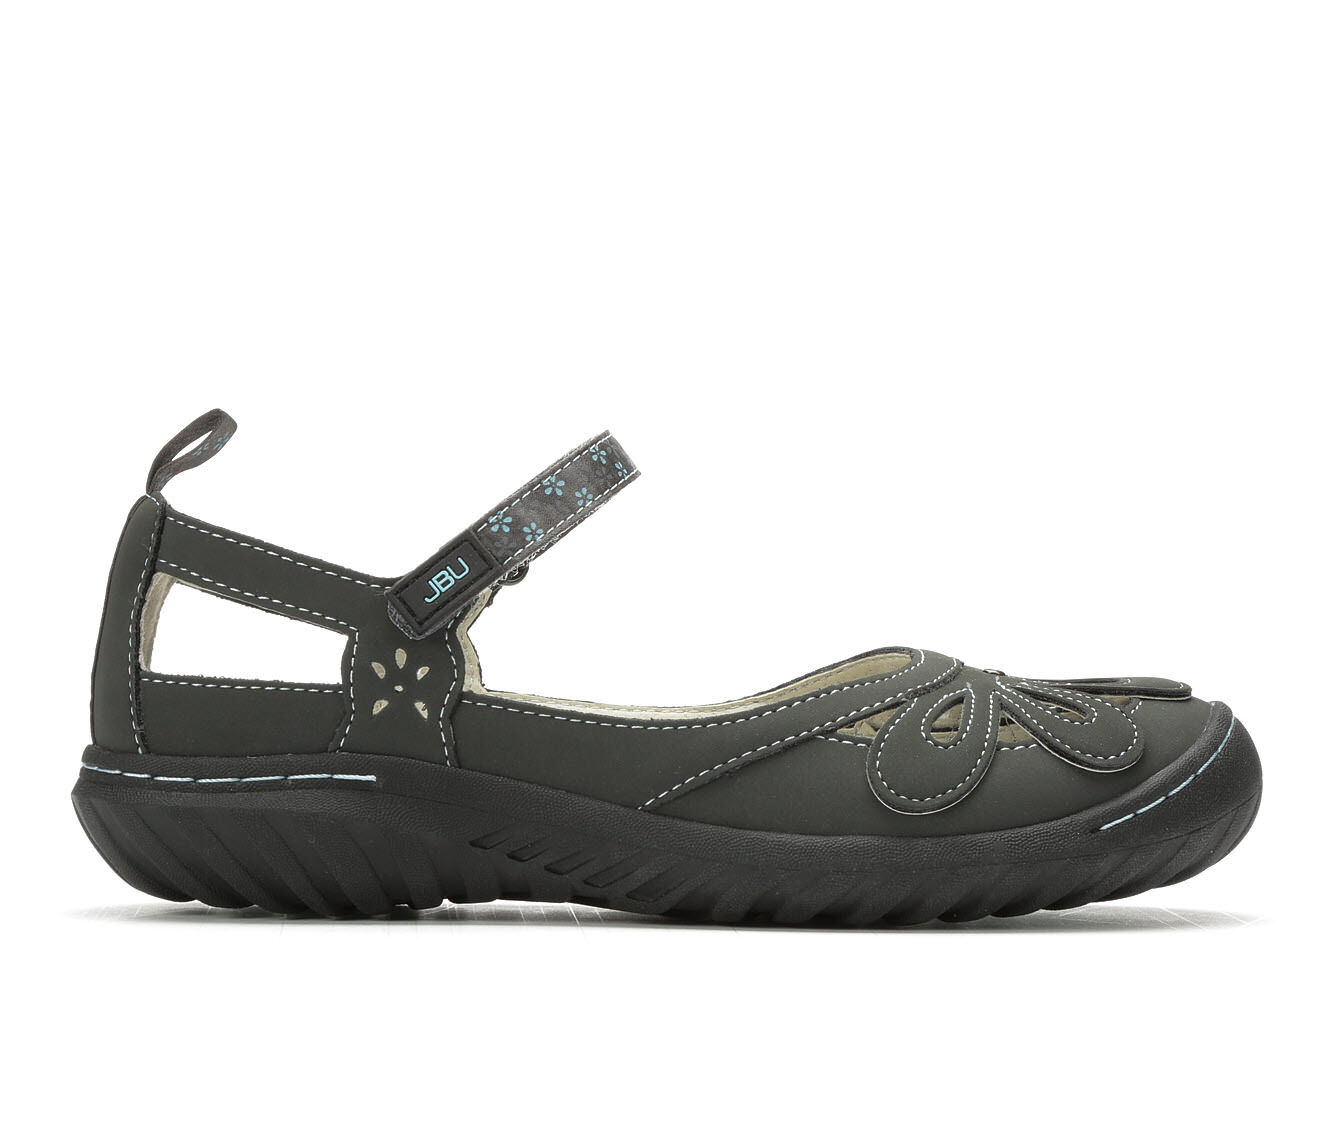 Women's JBU by Jambu Wildflower Encore Casual Shoes